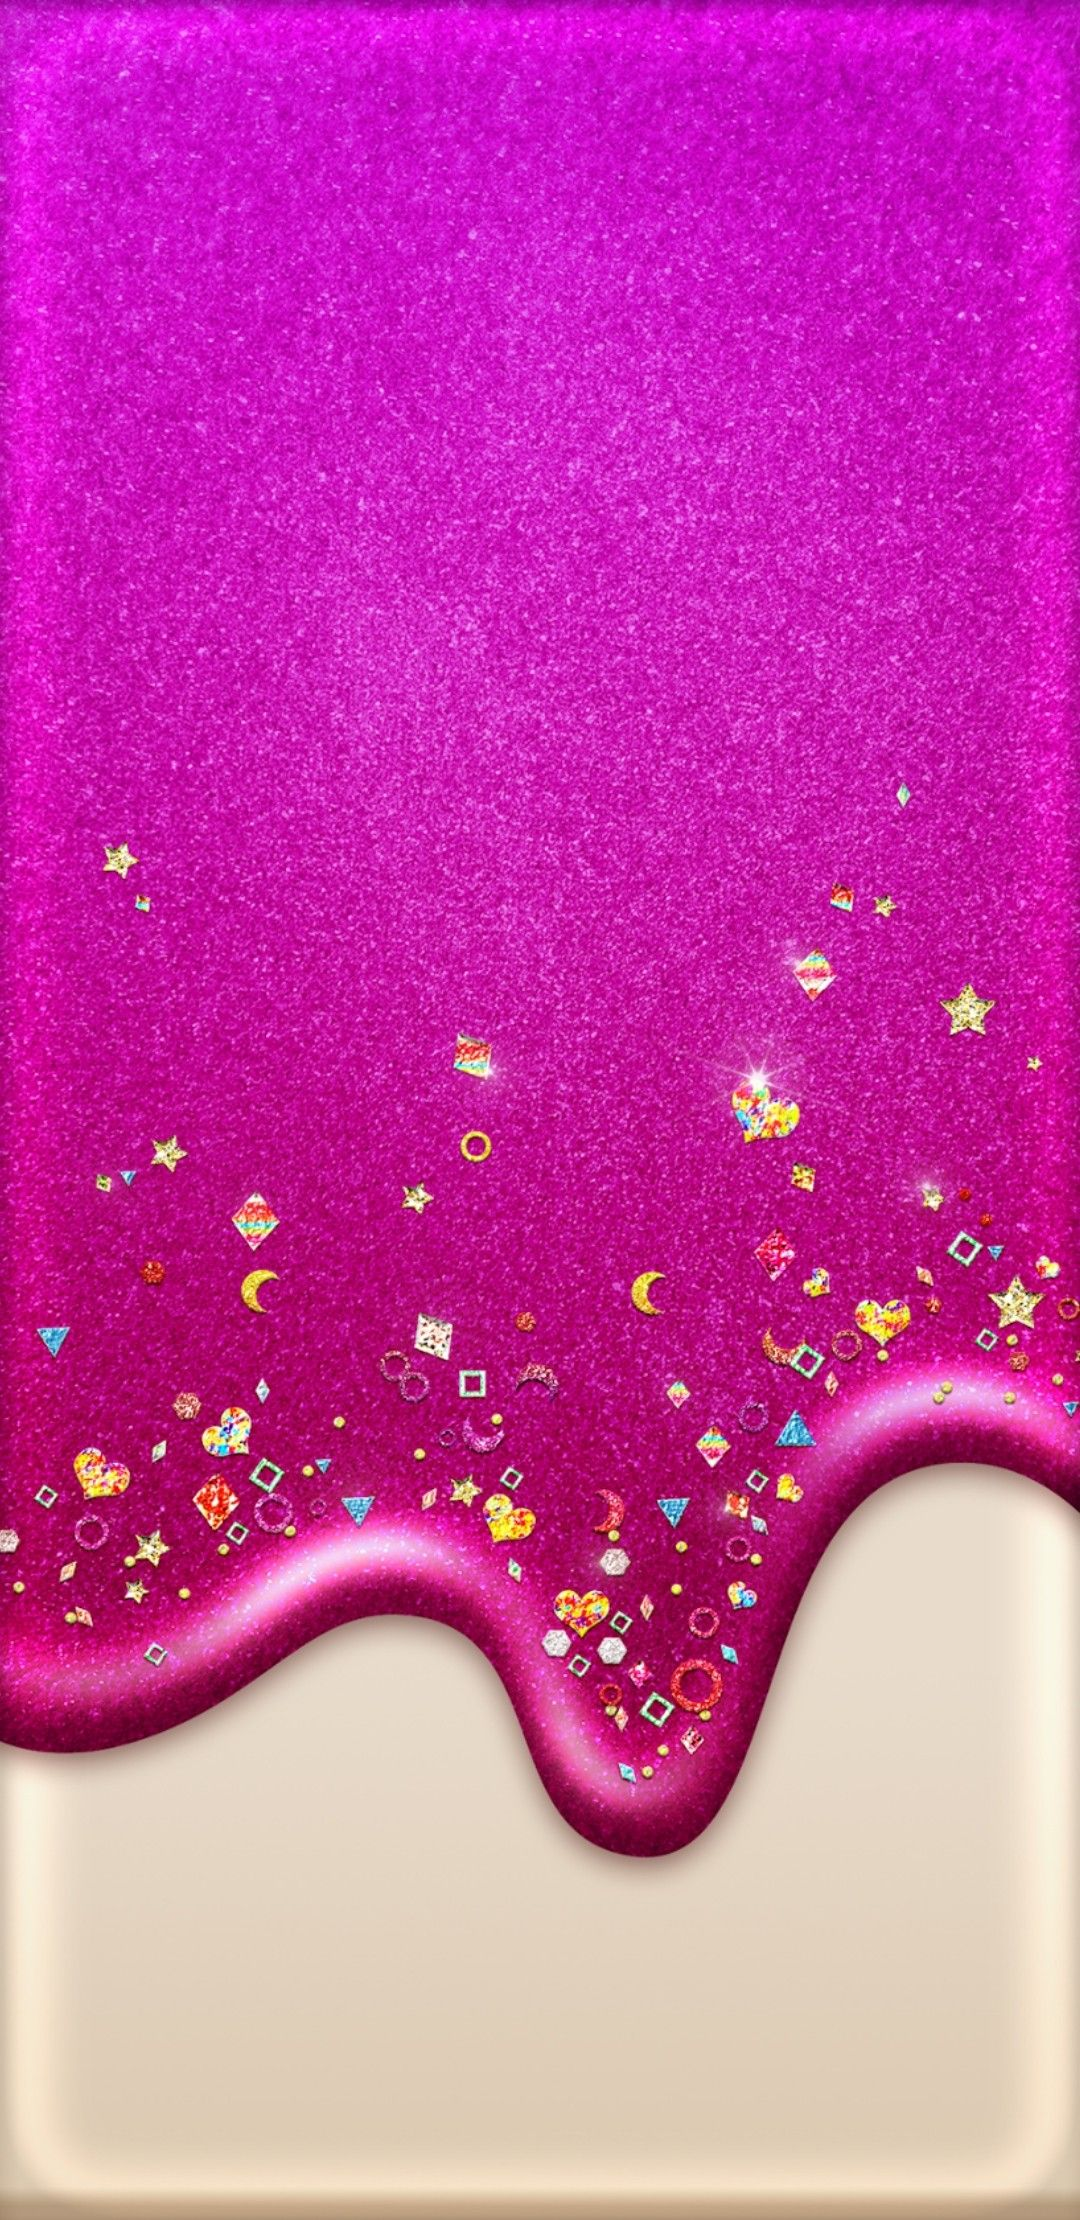 Pin by JavaUp on Pink Slime wallpaper, Wallpaper project